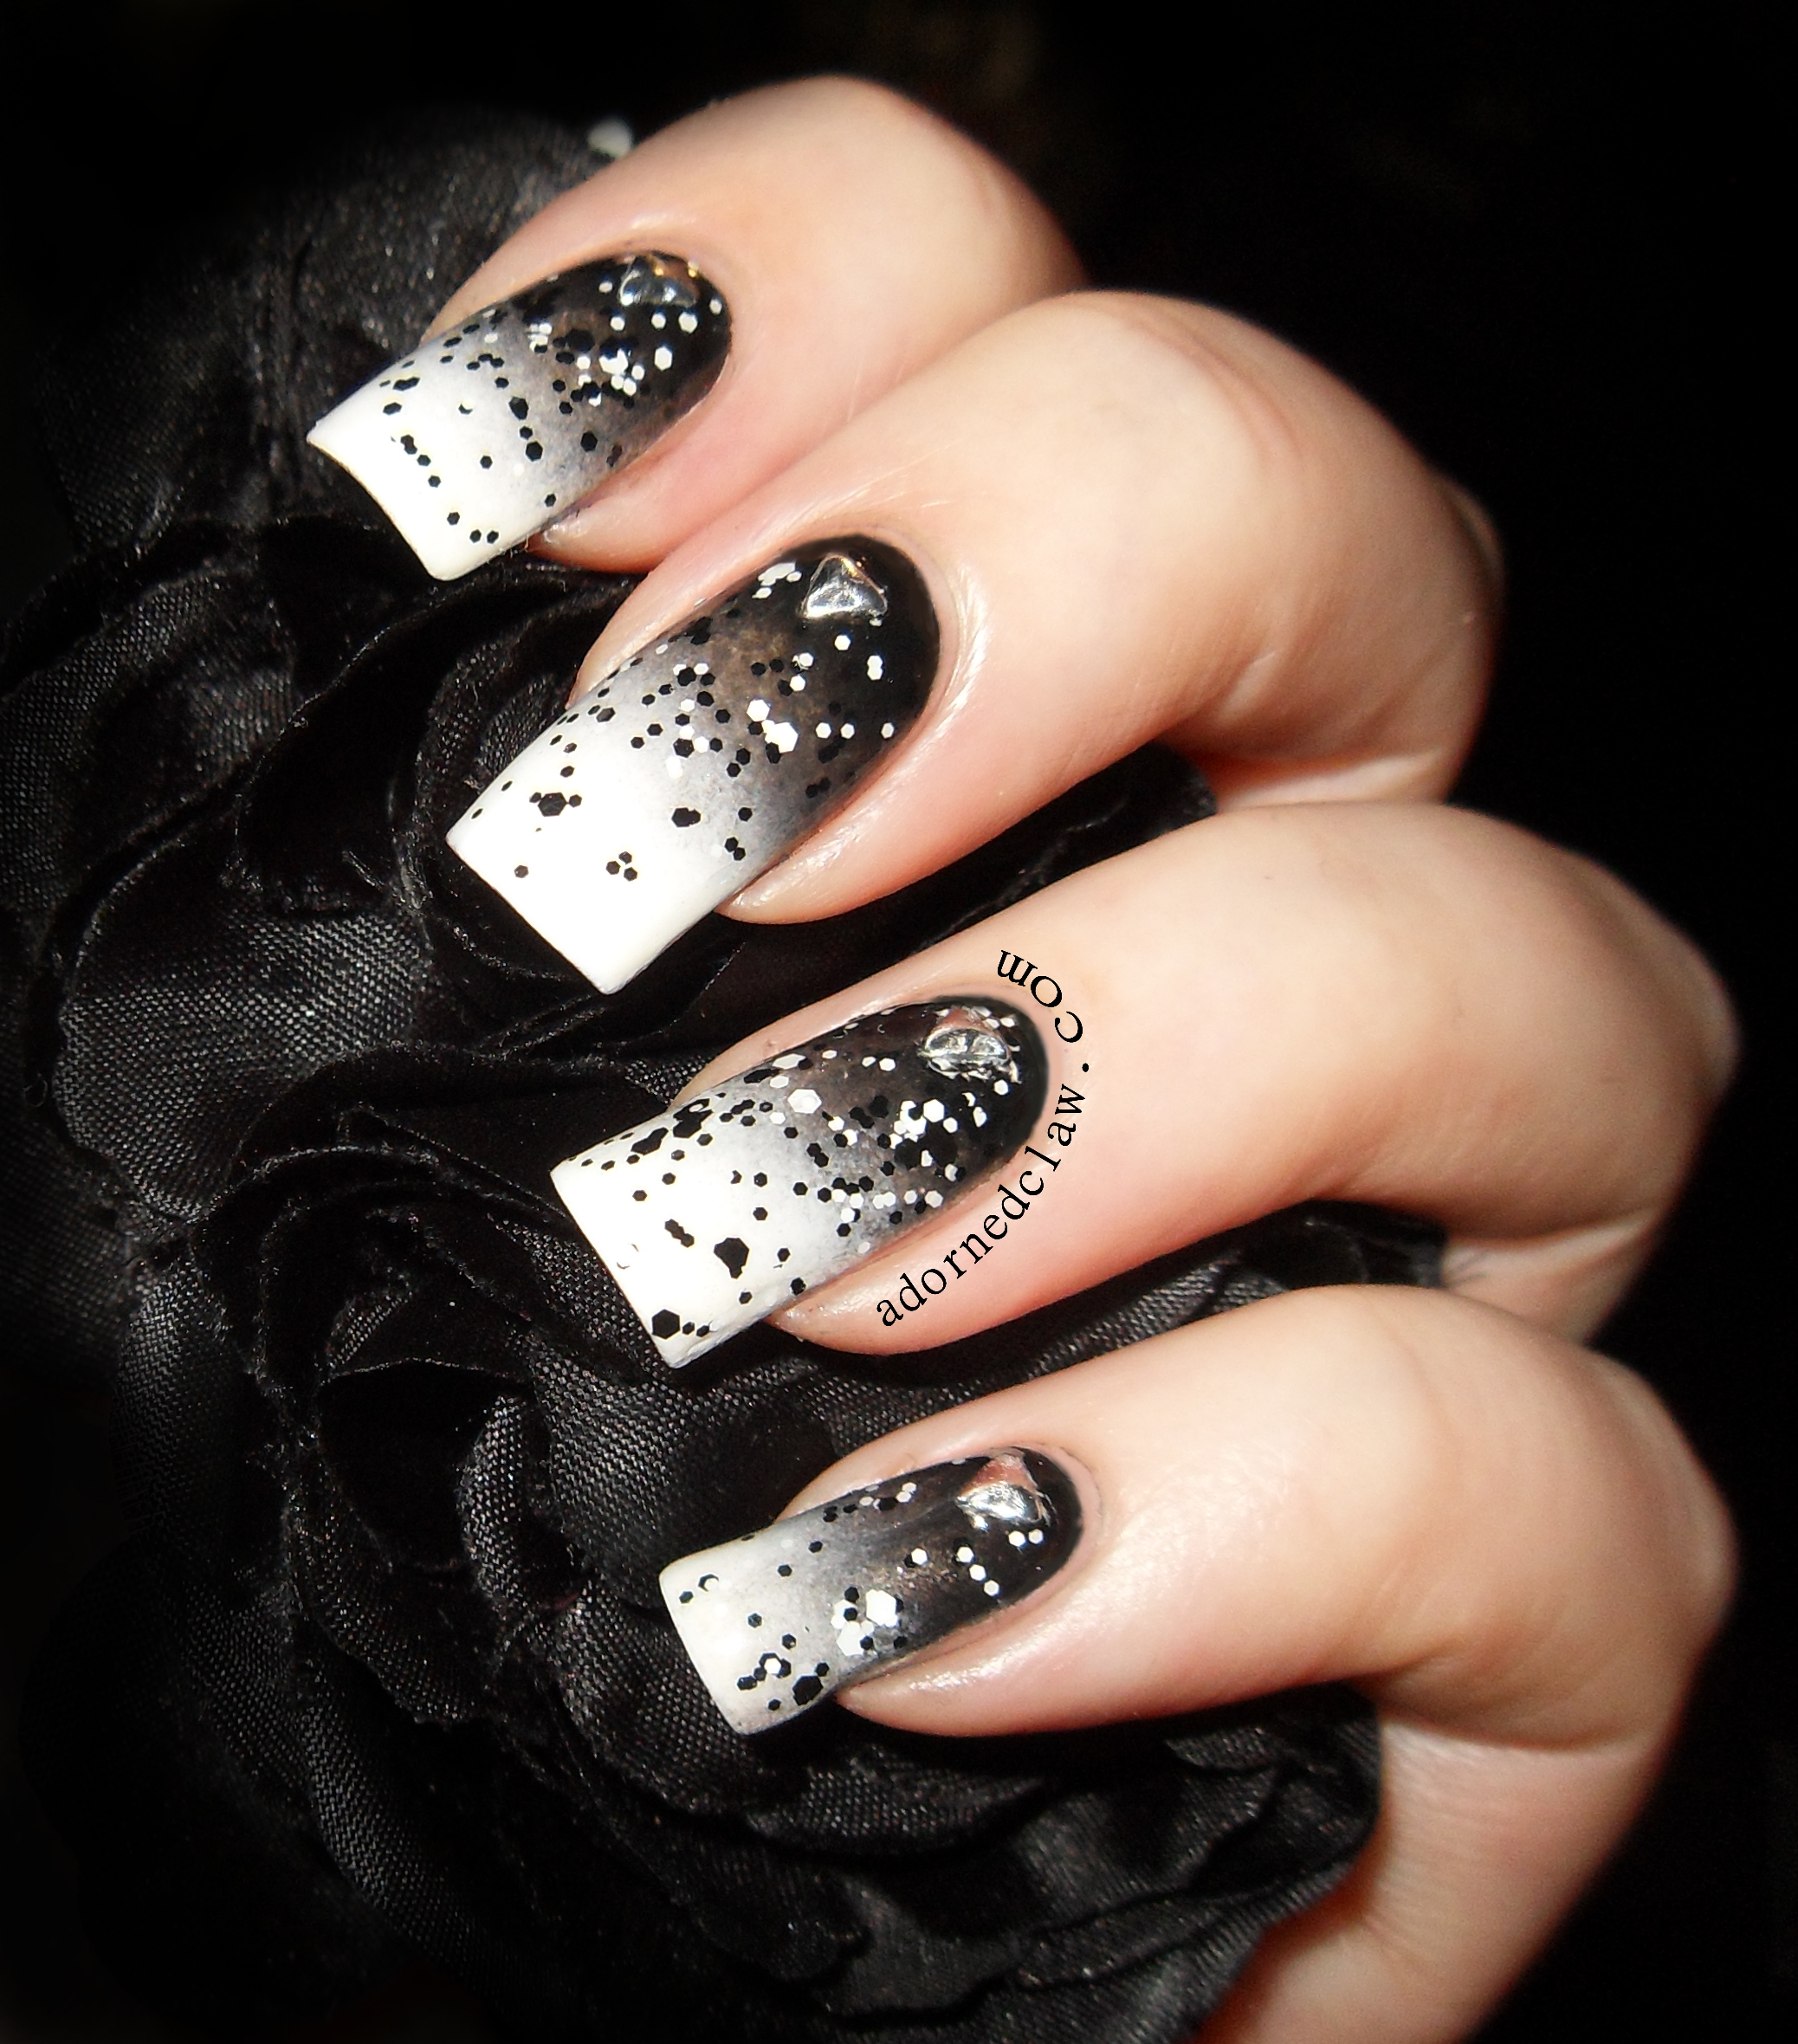 Pics Of Nail Art: Revlon Black Magic